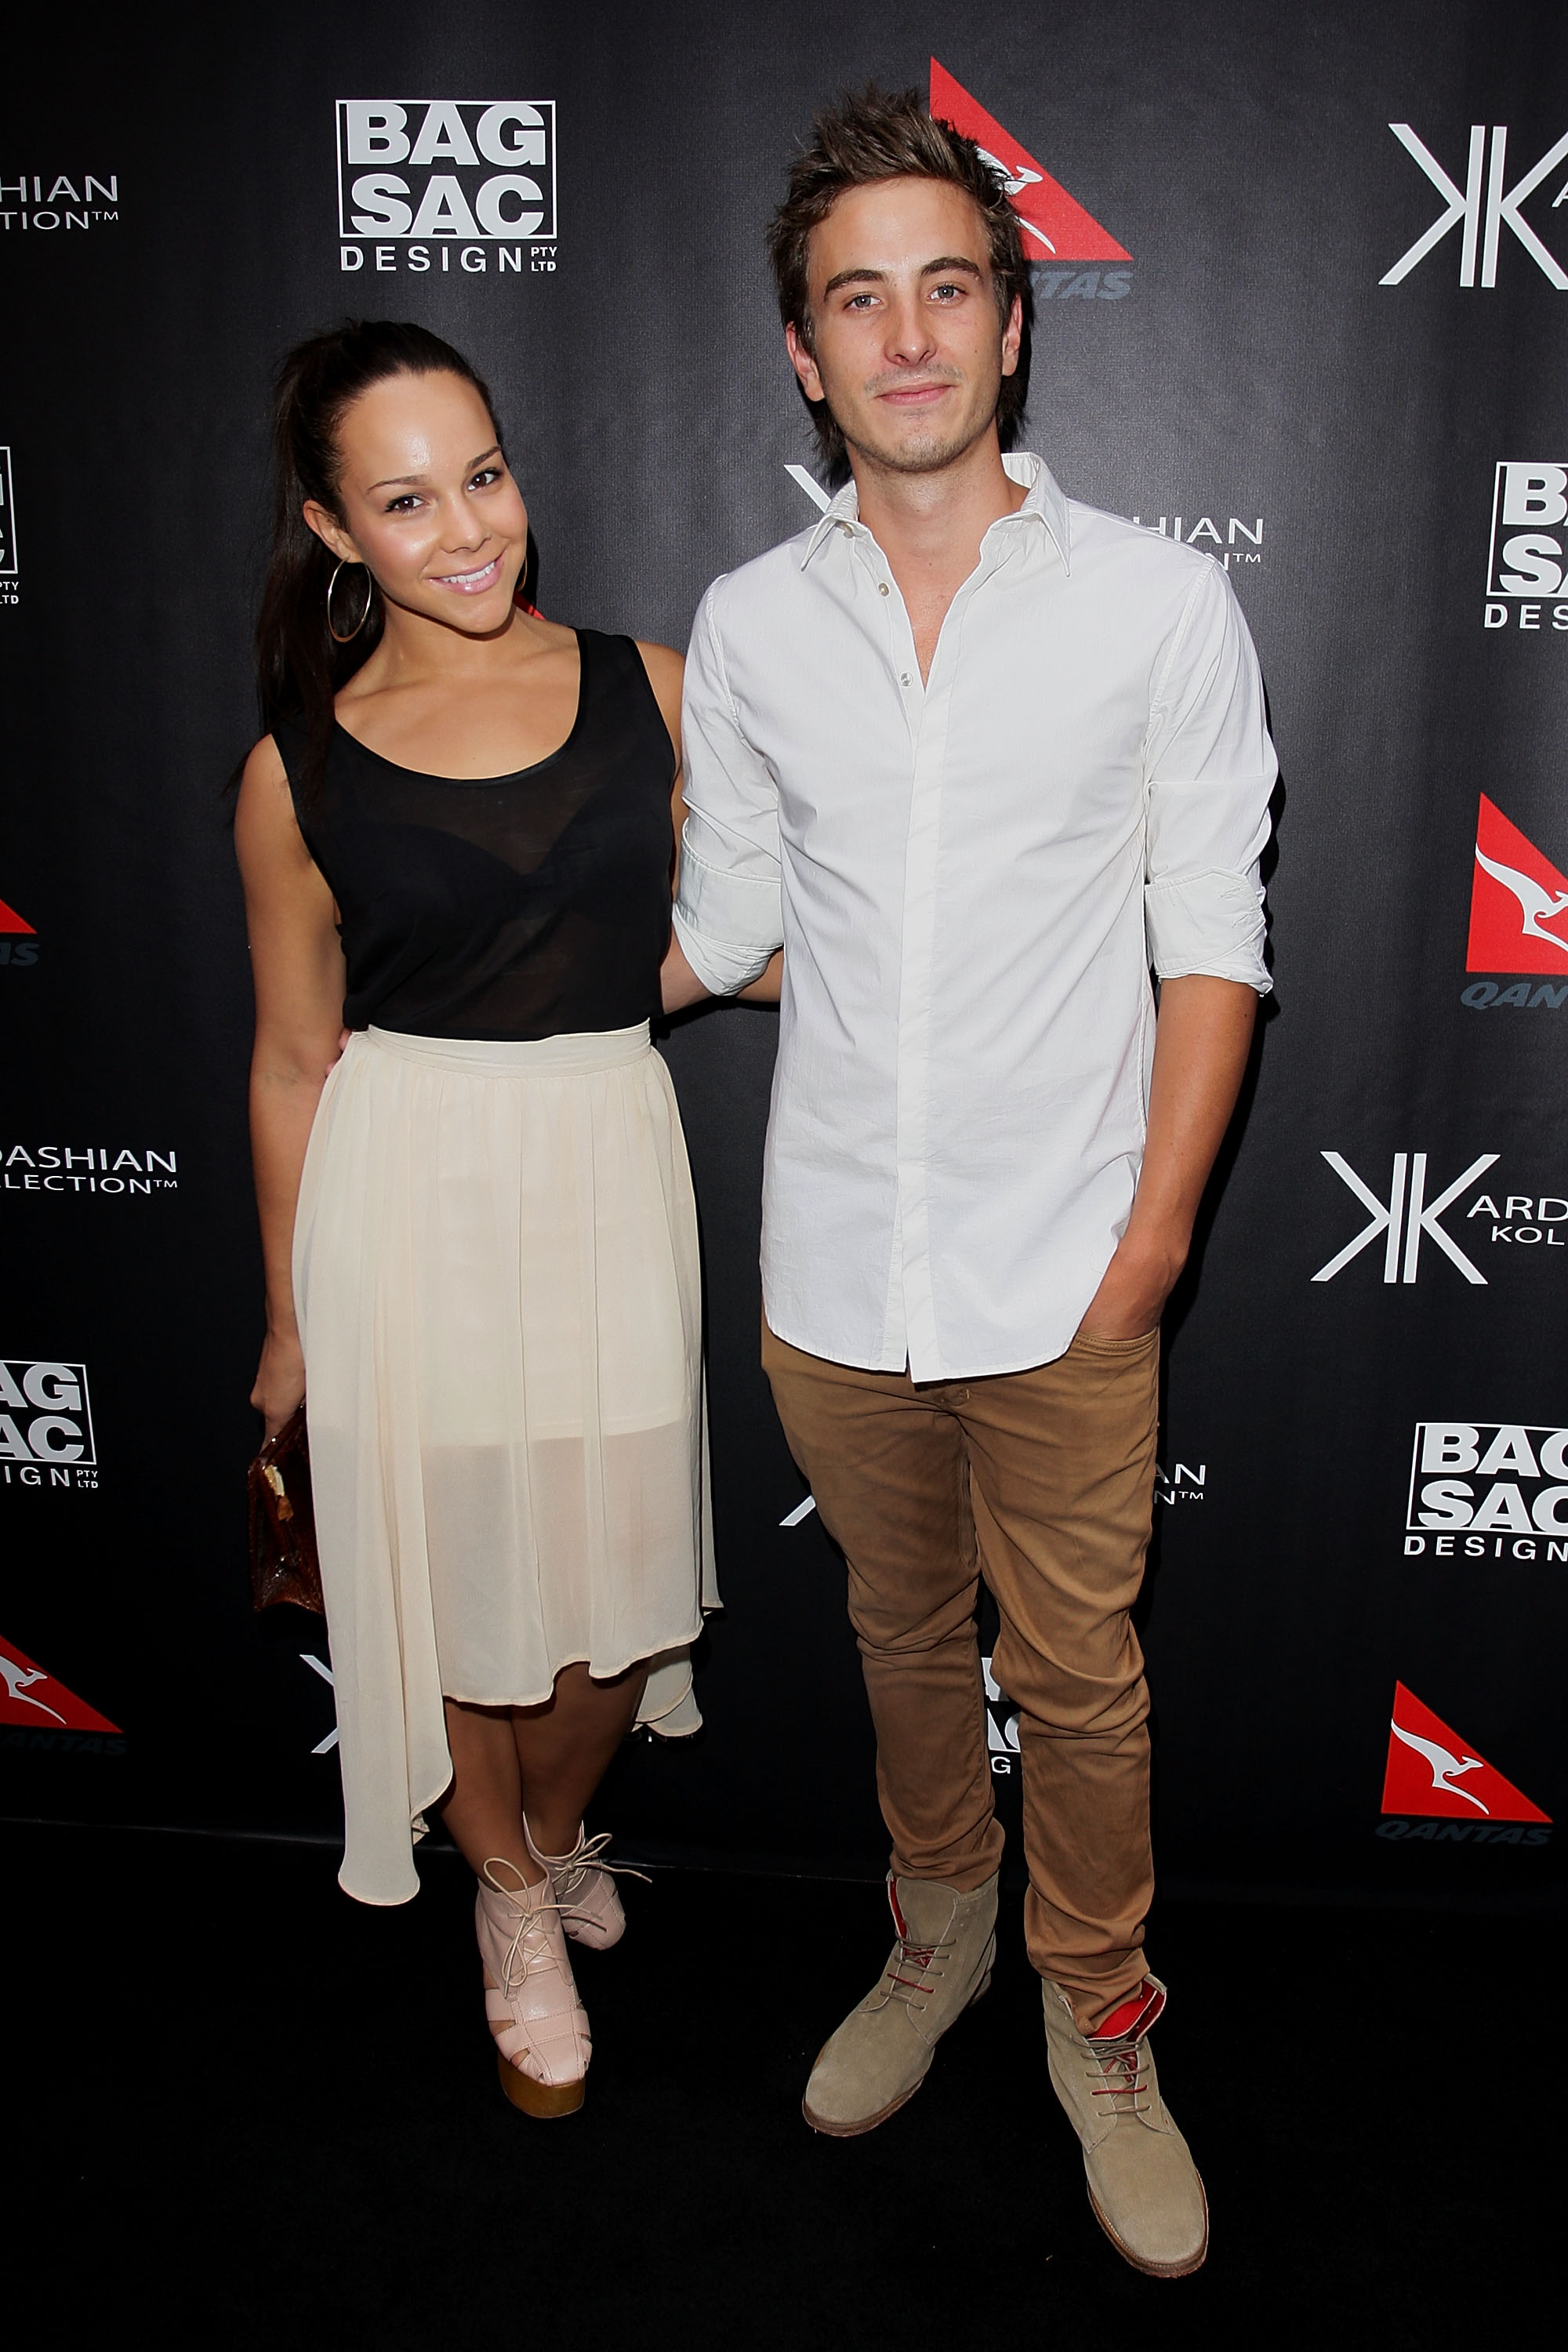 Dina Caplan and Ryan Corr at the Kardashian Kollection launch.